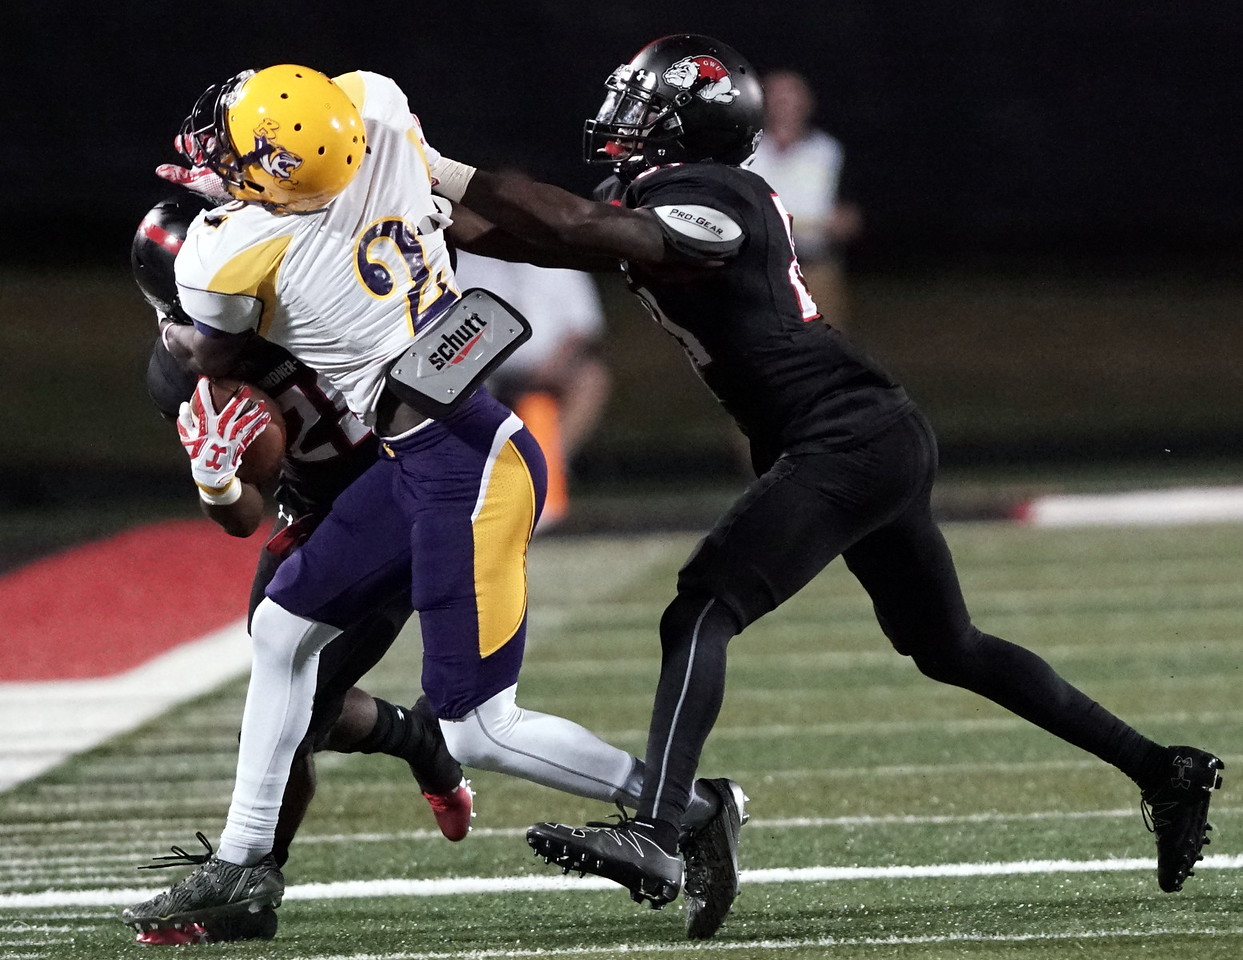 Robert McKoy is tackled by Benedict. -Taken by Ashley Falls